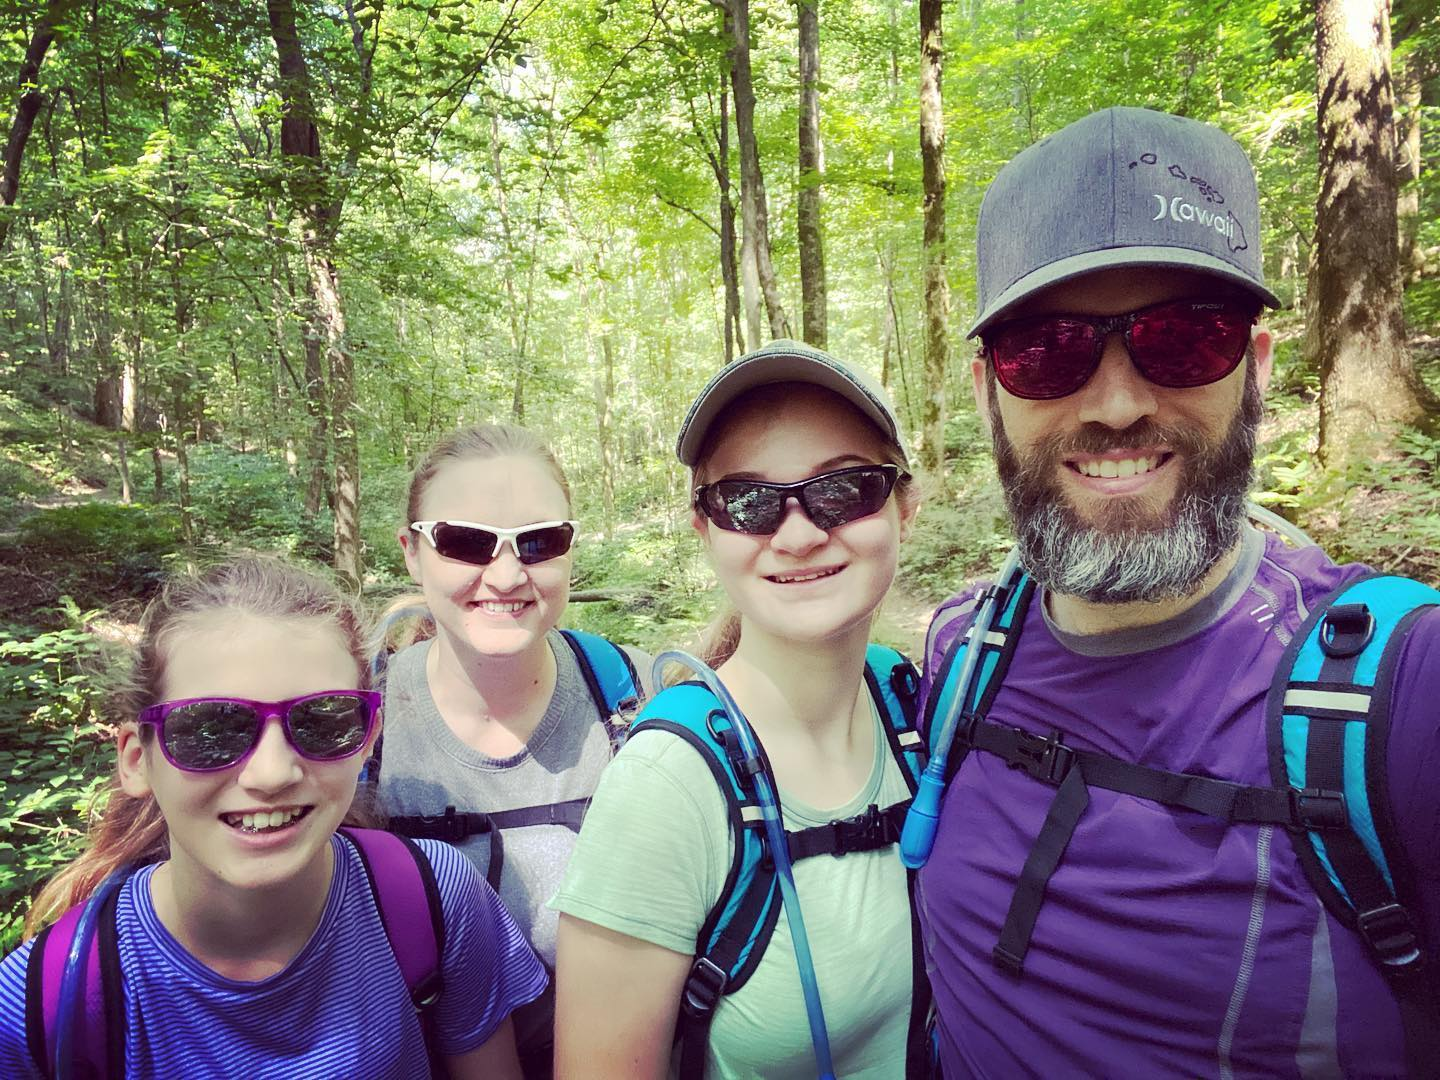 We had quite an adventure hiking the Garrison Creek Loop along the Natchez Trace today. #family #hiking